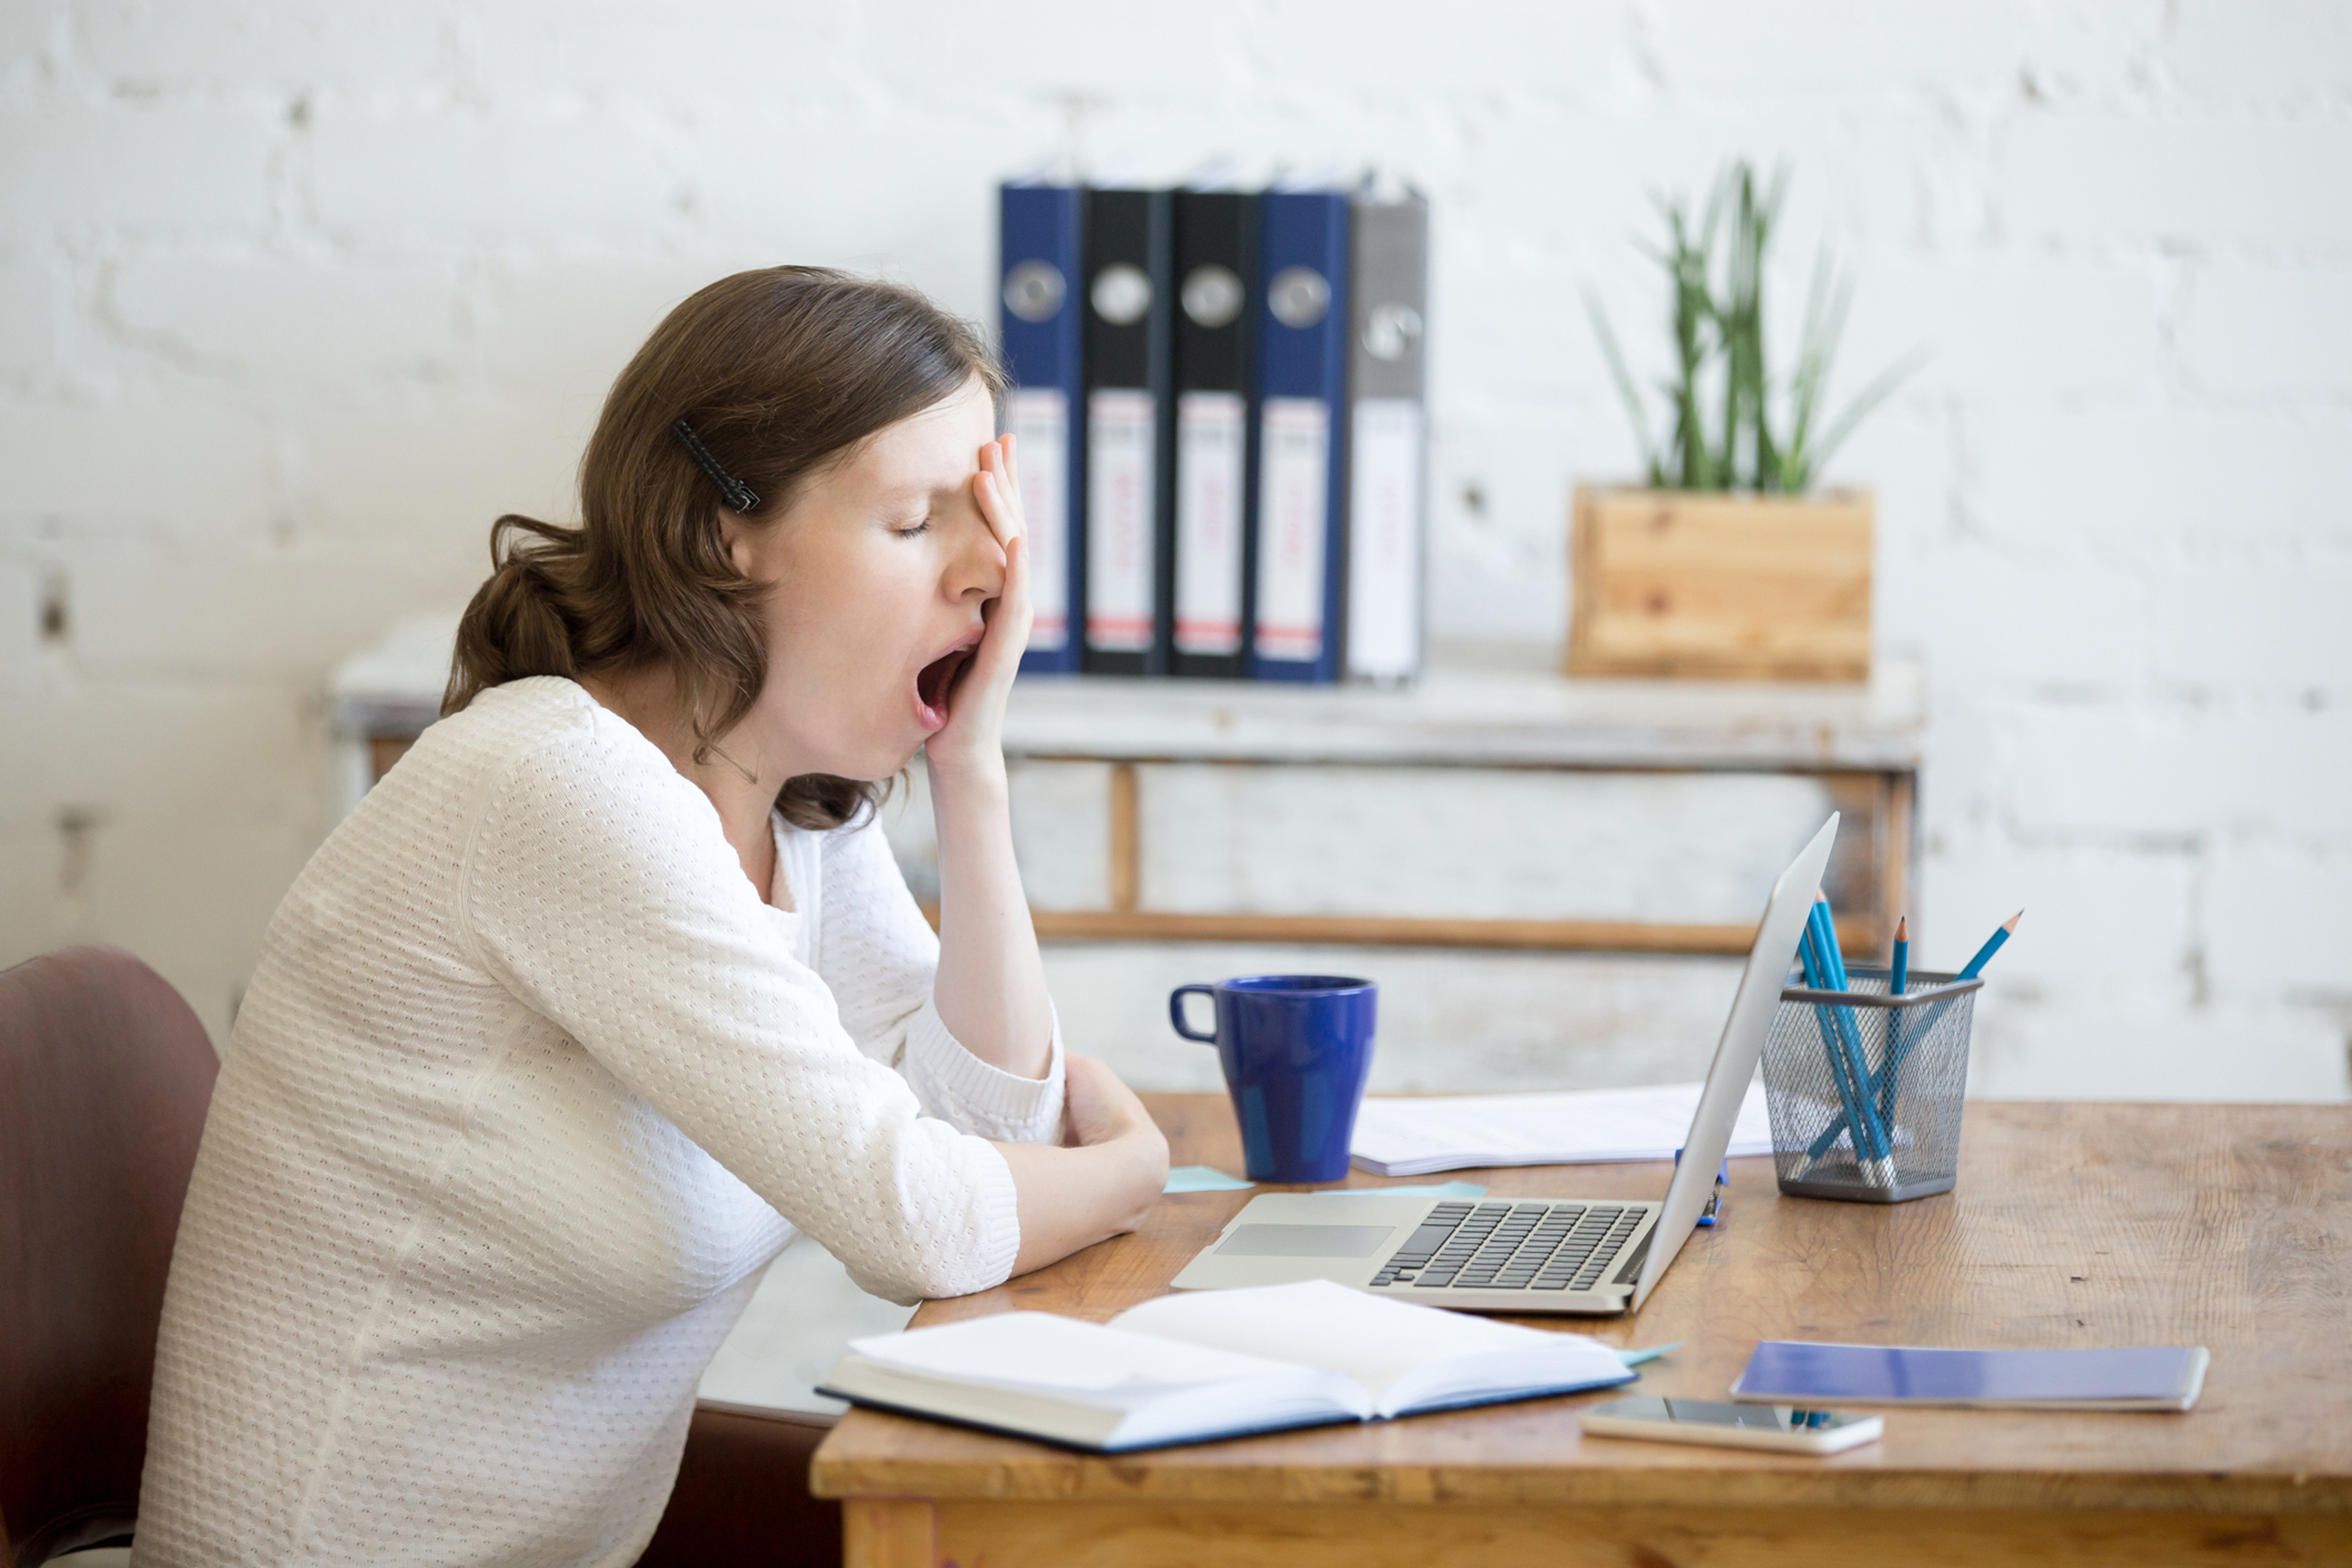 A woman yawning at her desk (Thinkstock/PA)